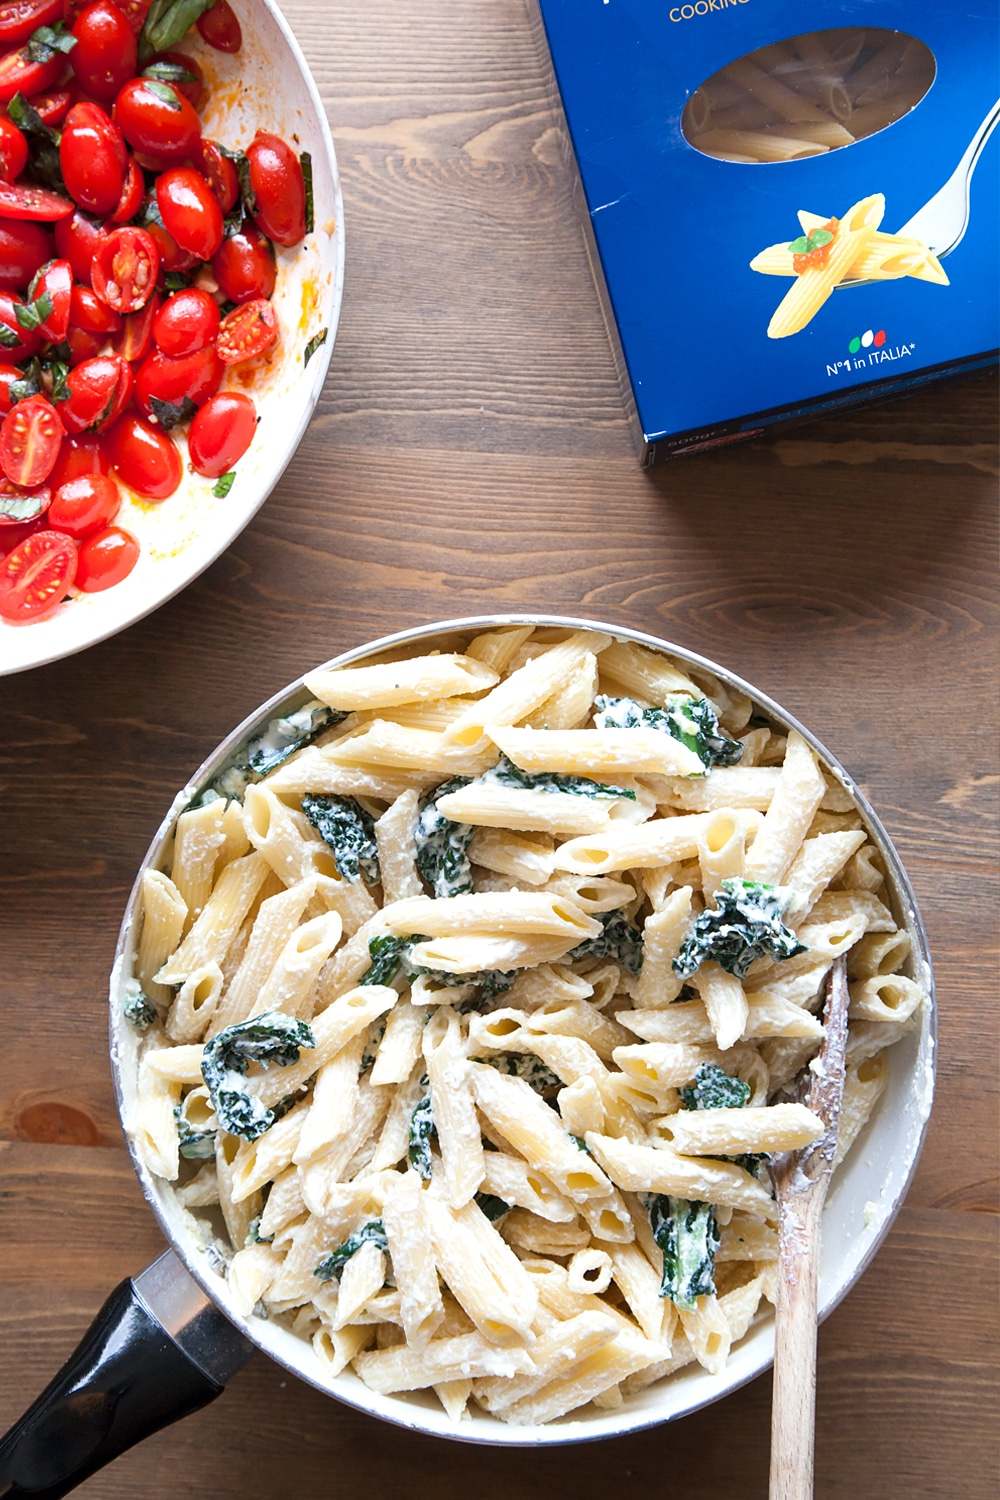 Freshly cooked penne pasta is added to the frying pan